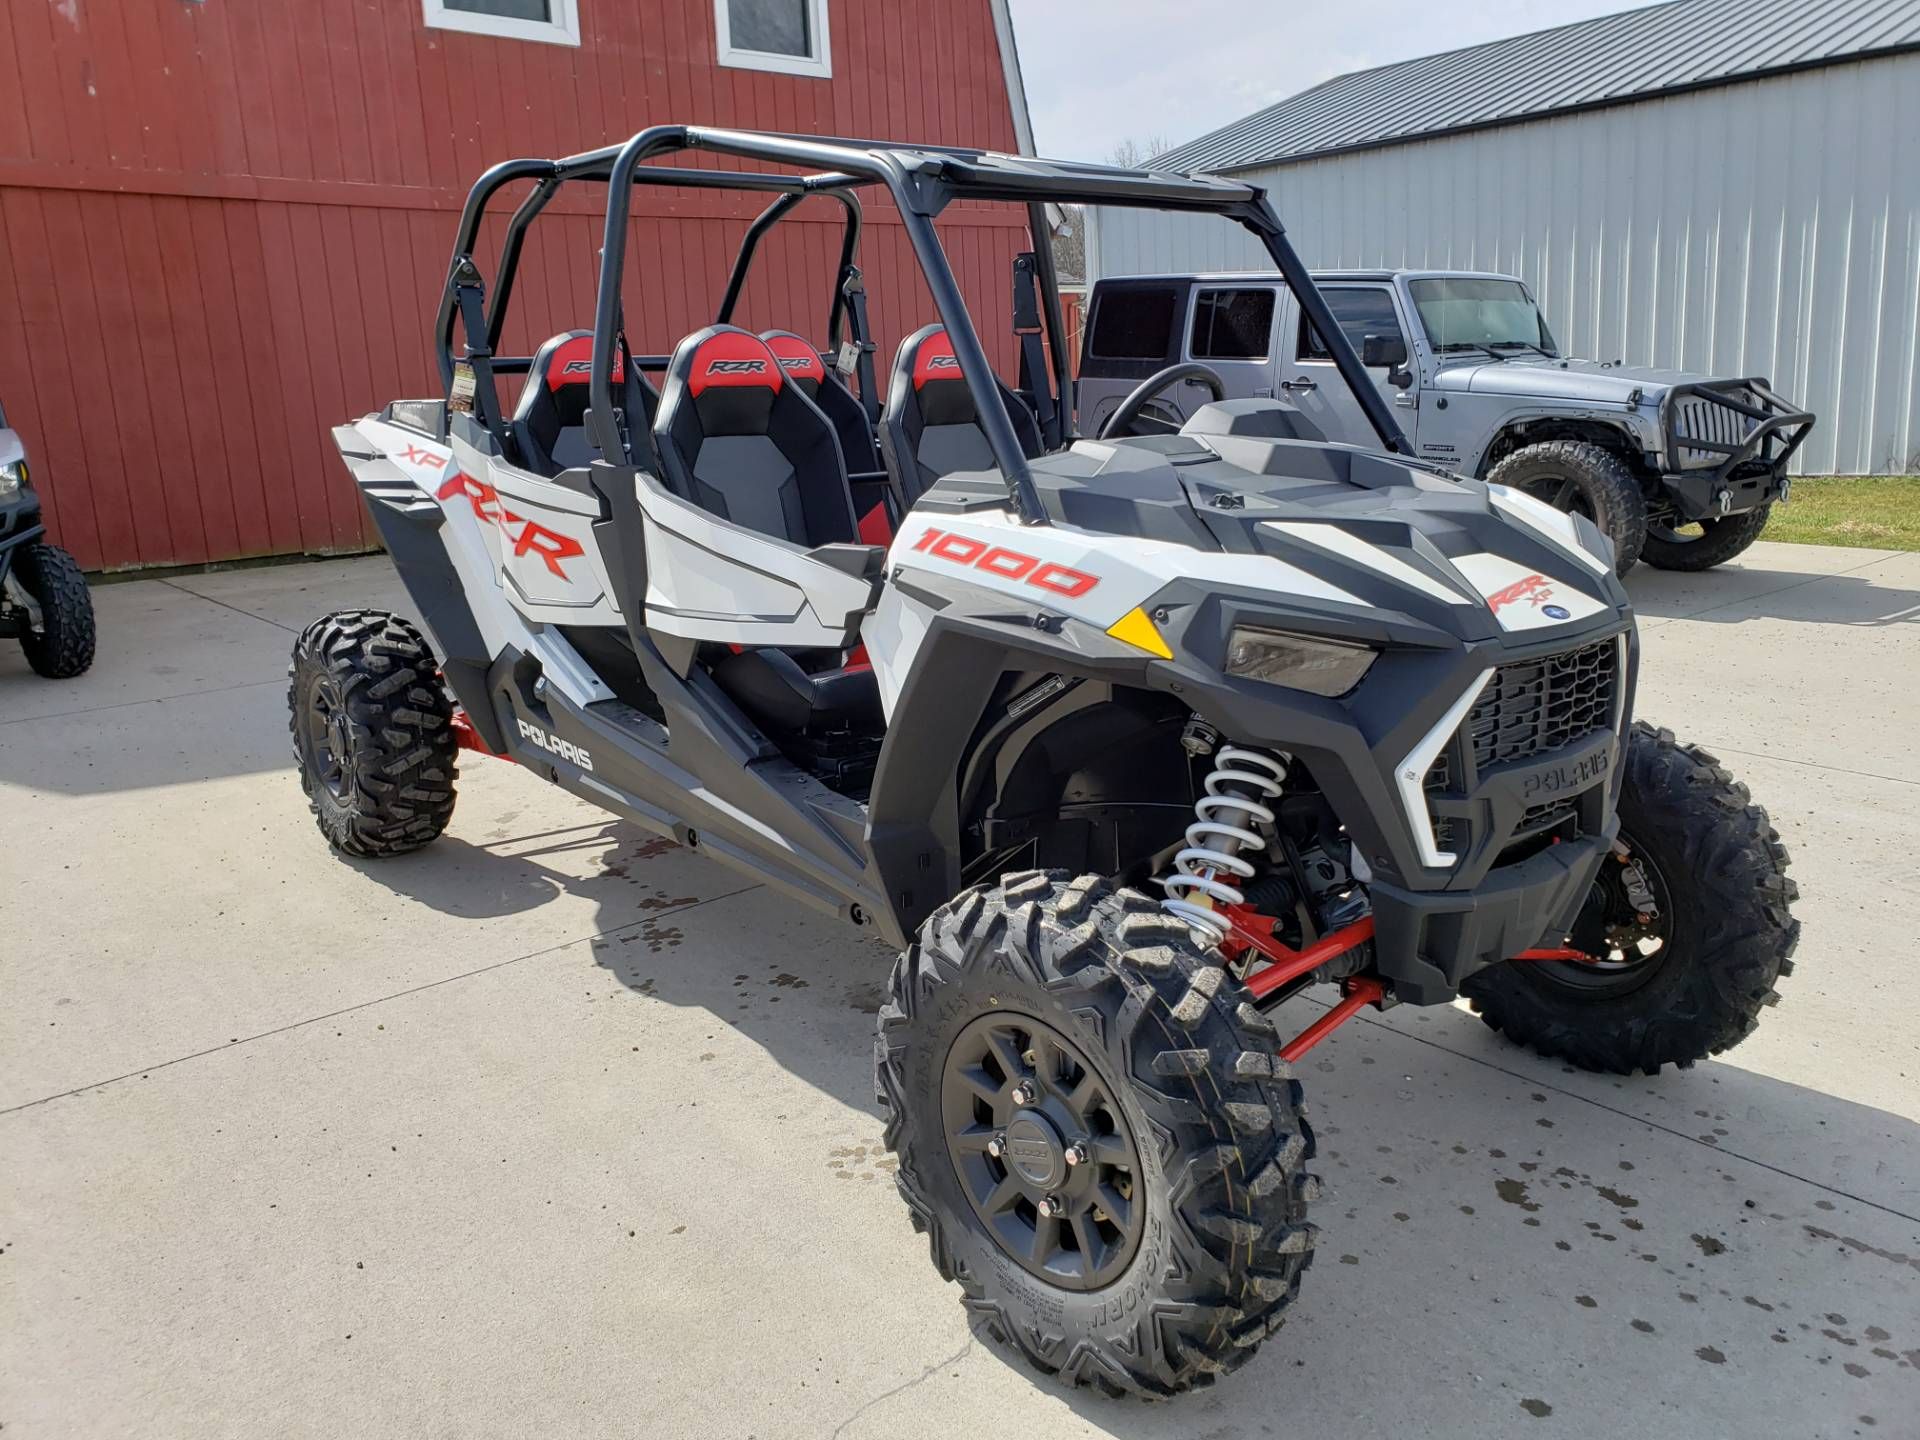 2020 Polaris RZR XP 4 1000 in Cambridge, Ohio - Photo 4